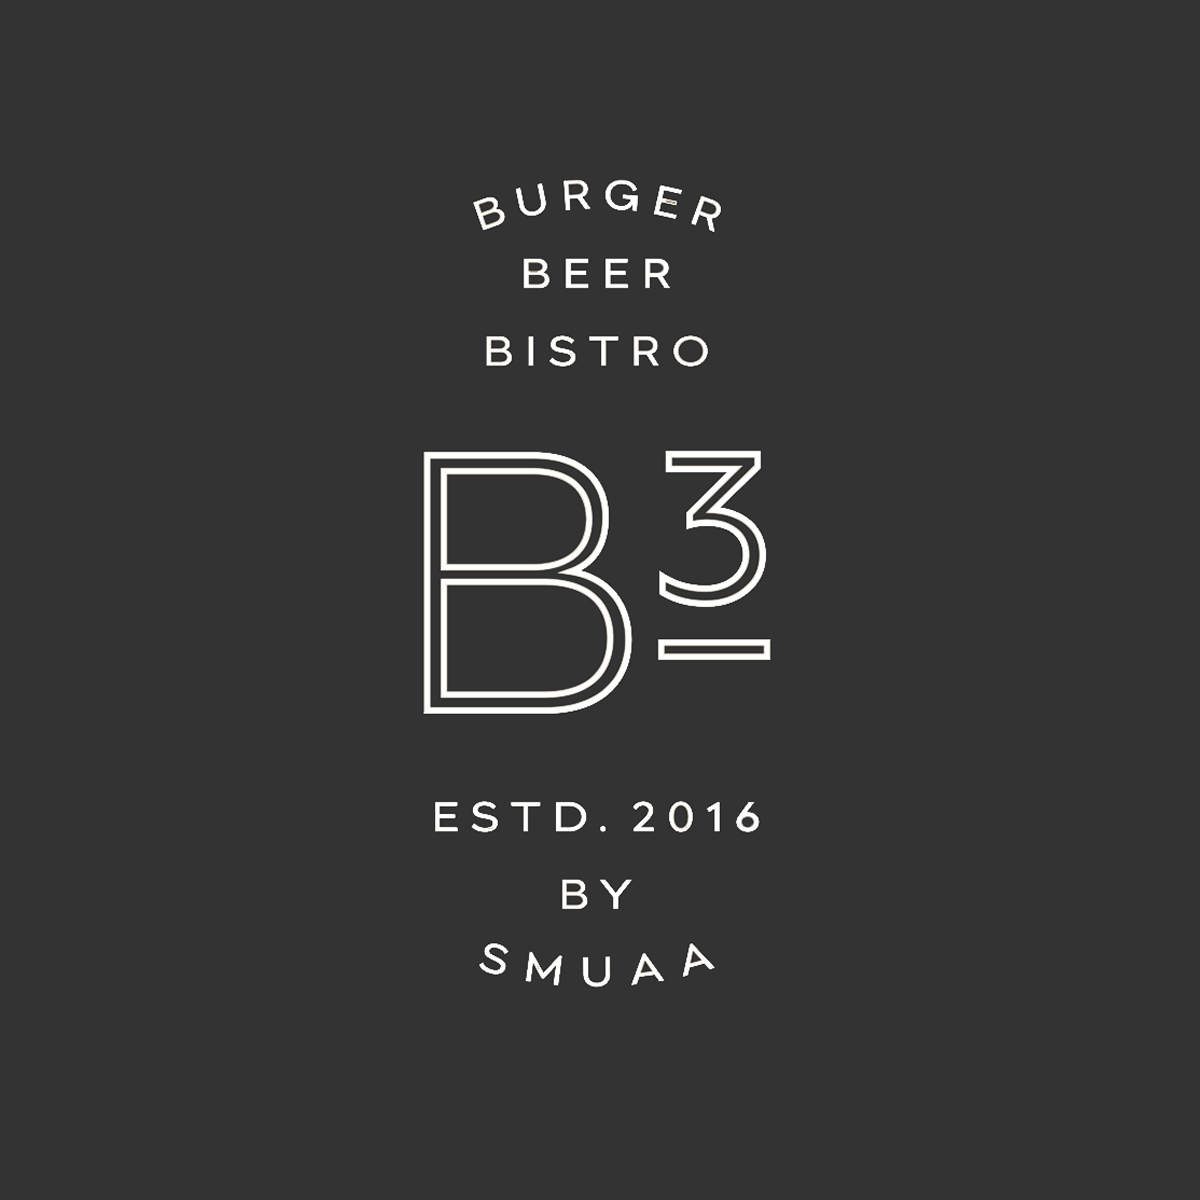 B3 - Burger Beer Bistro by SMUAA